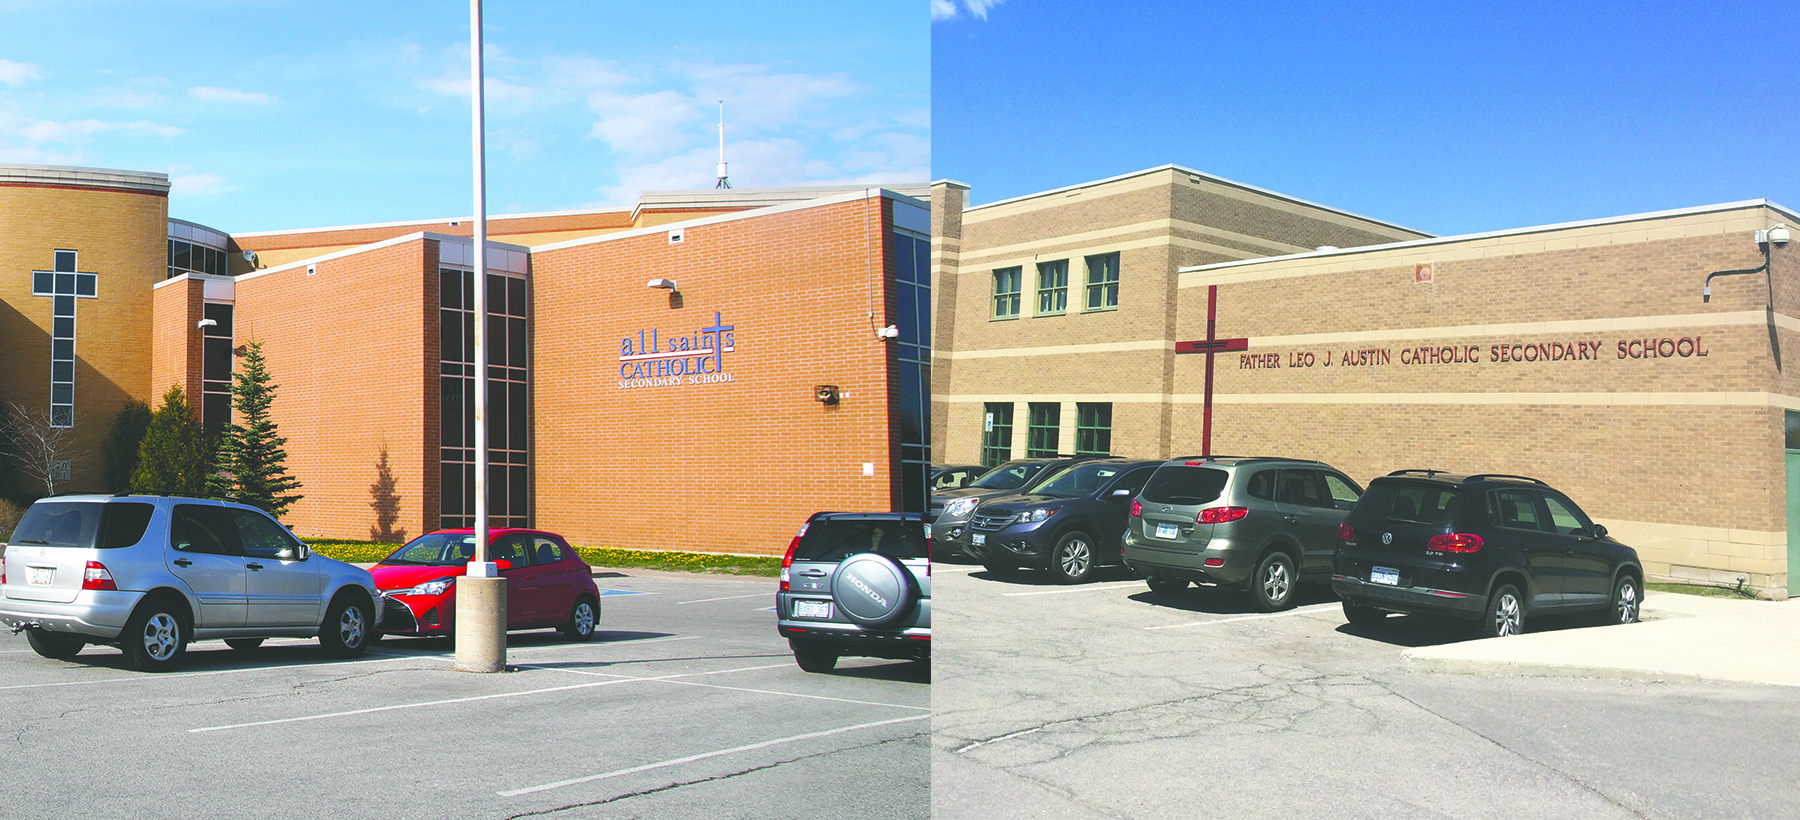 Two Whitby Catholic High Schools